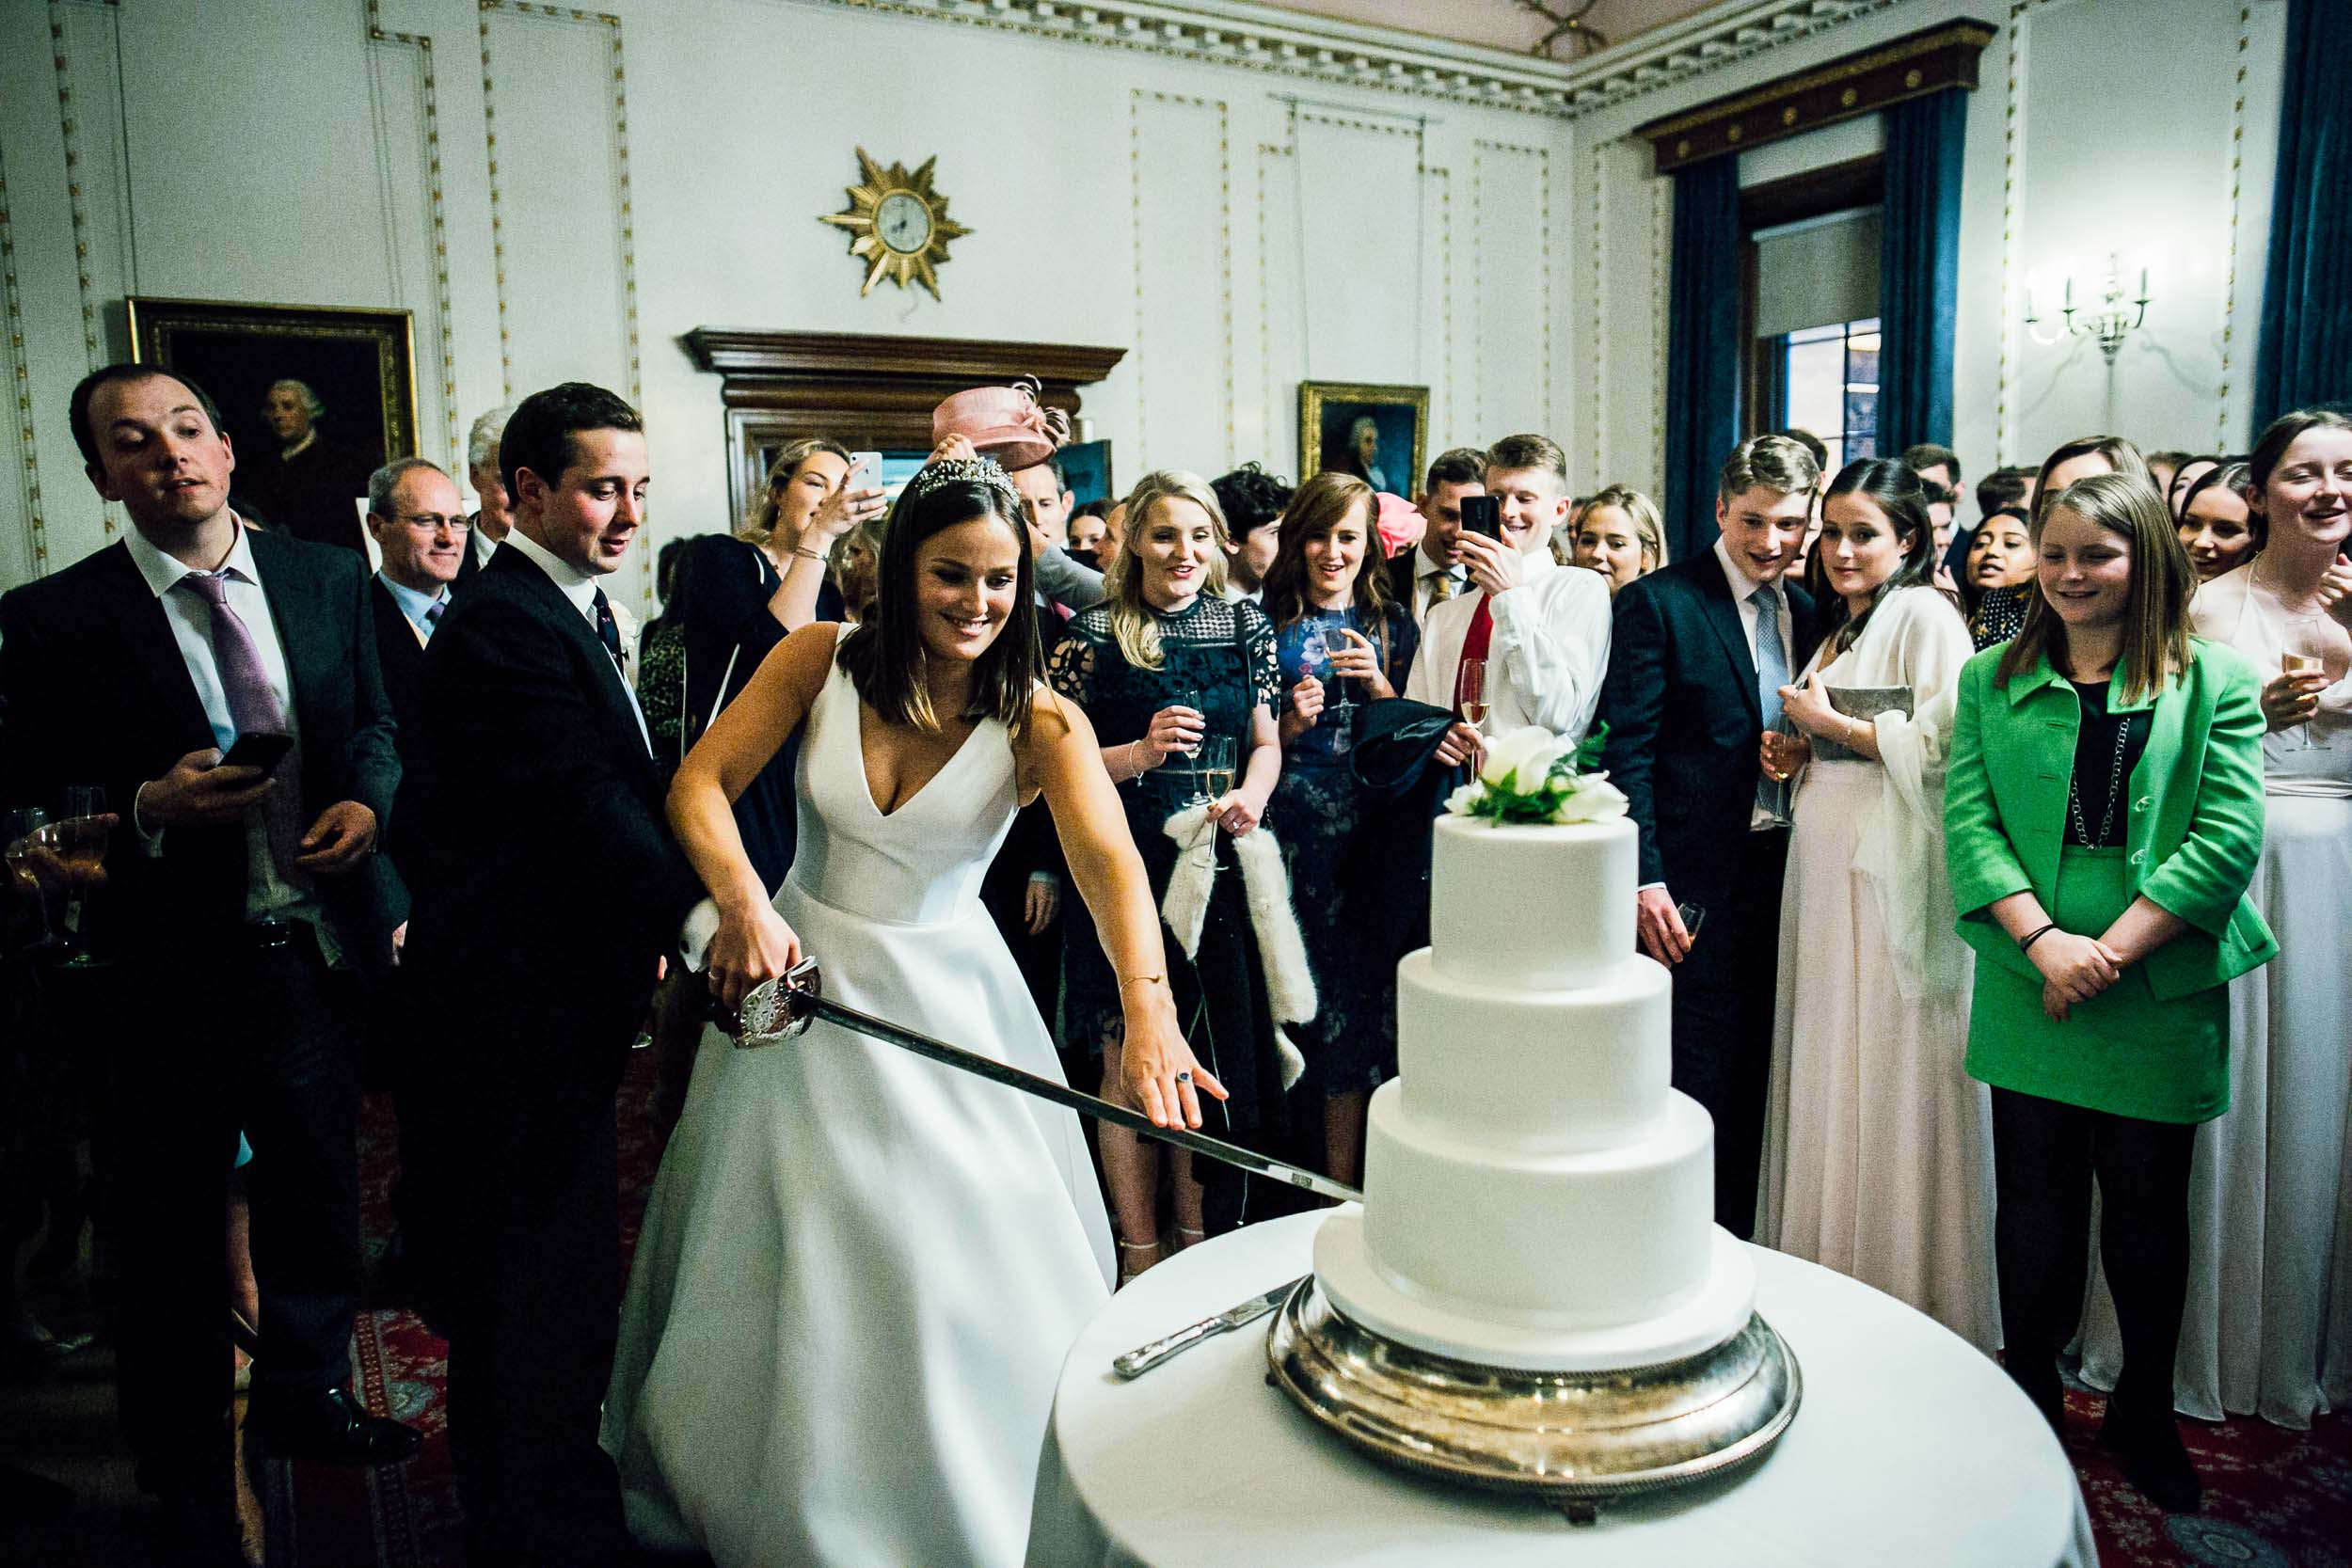 stationers-hall-wedding-photographer-london 113.jpg